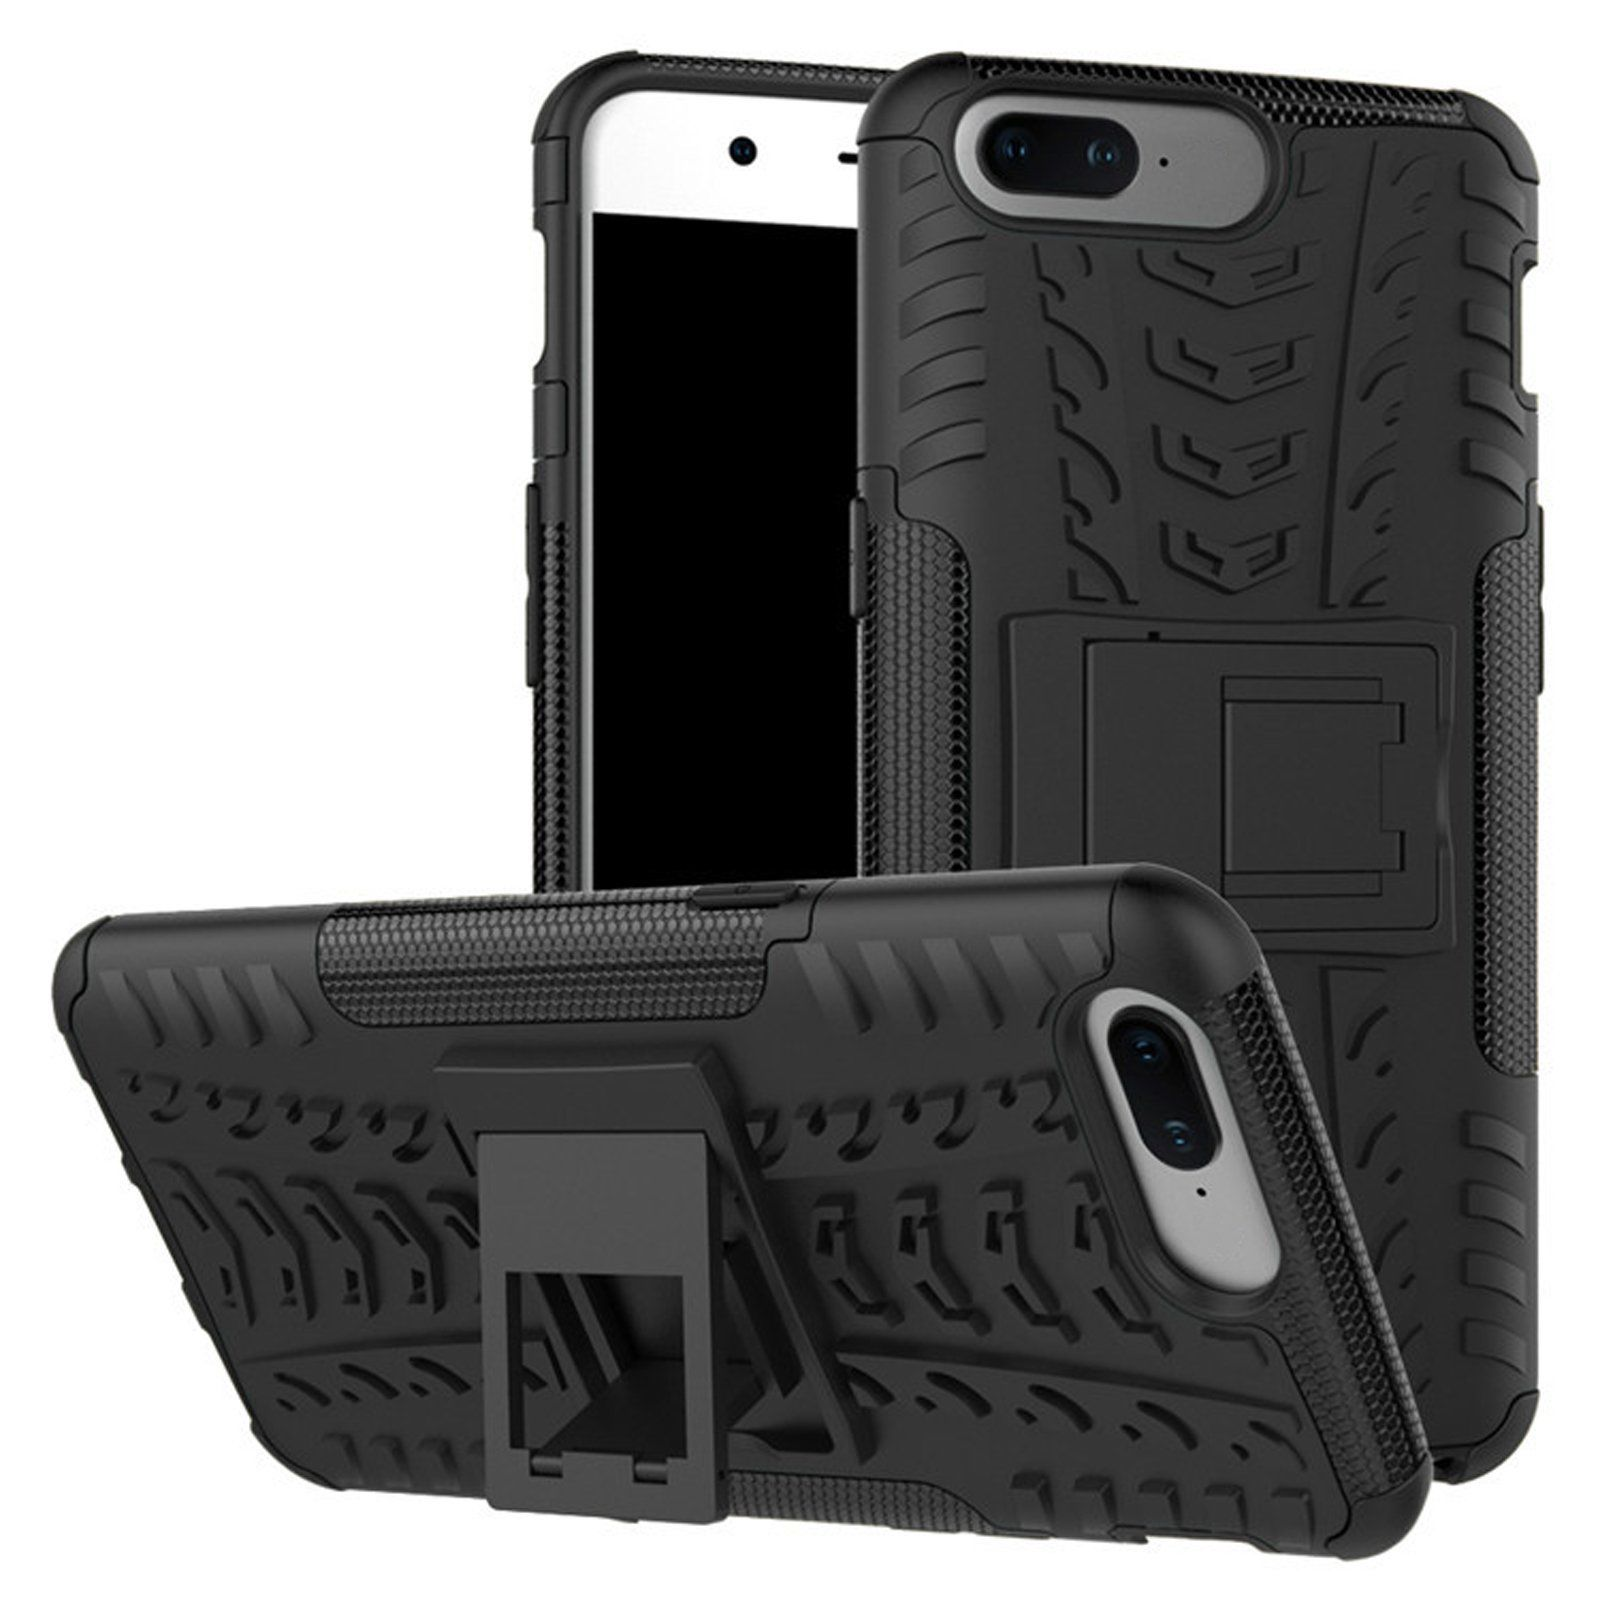 Shockproof Kickstand Rugged Armor Hard Case Cover For Meizu M3 M3s Nillkin M2 M5 Note Product View